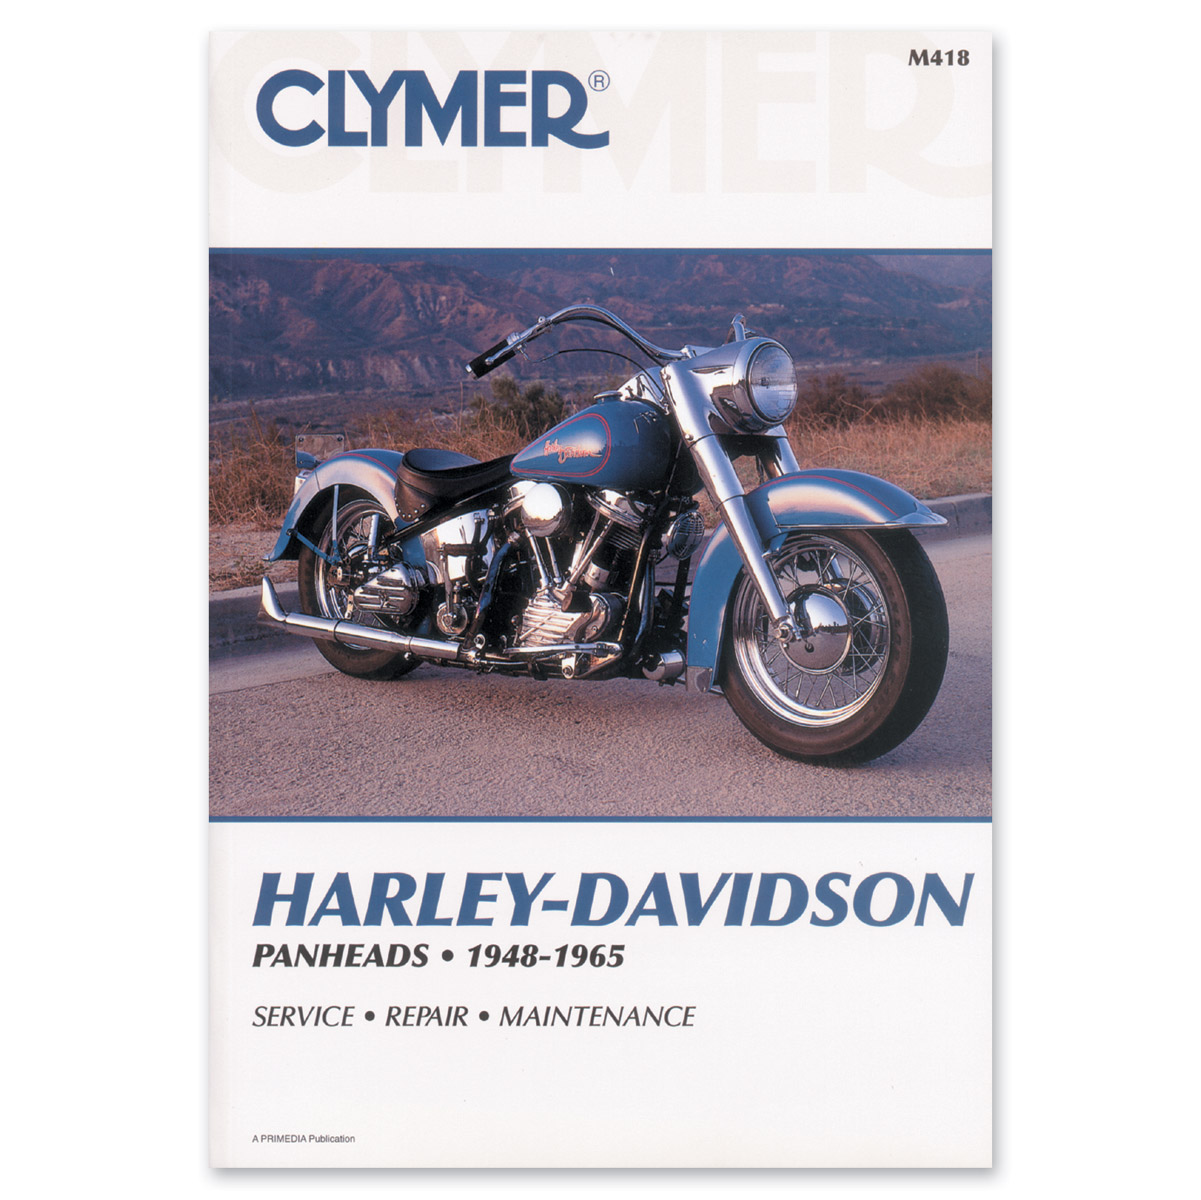 Clymer Panhead Repair Manual